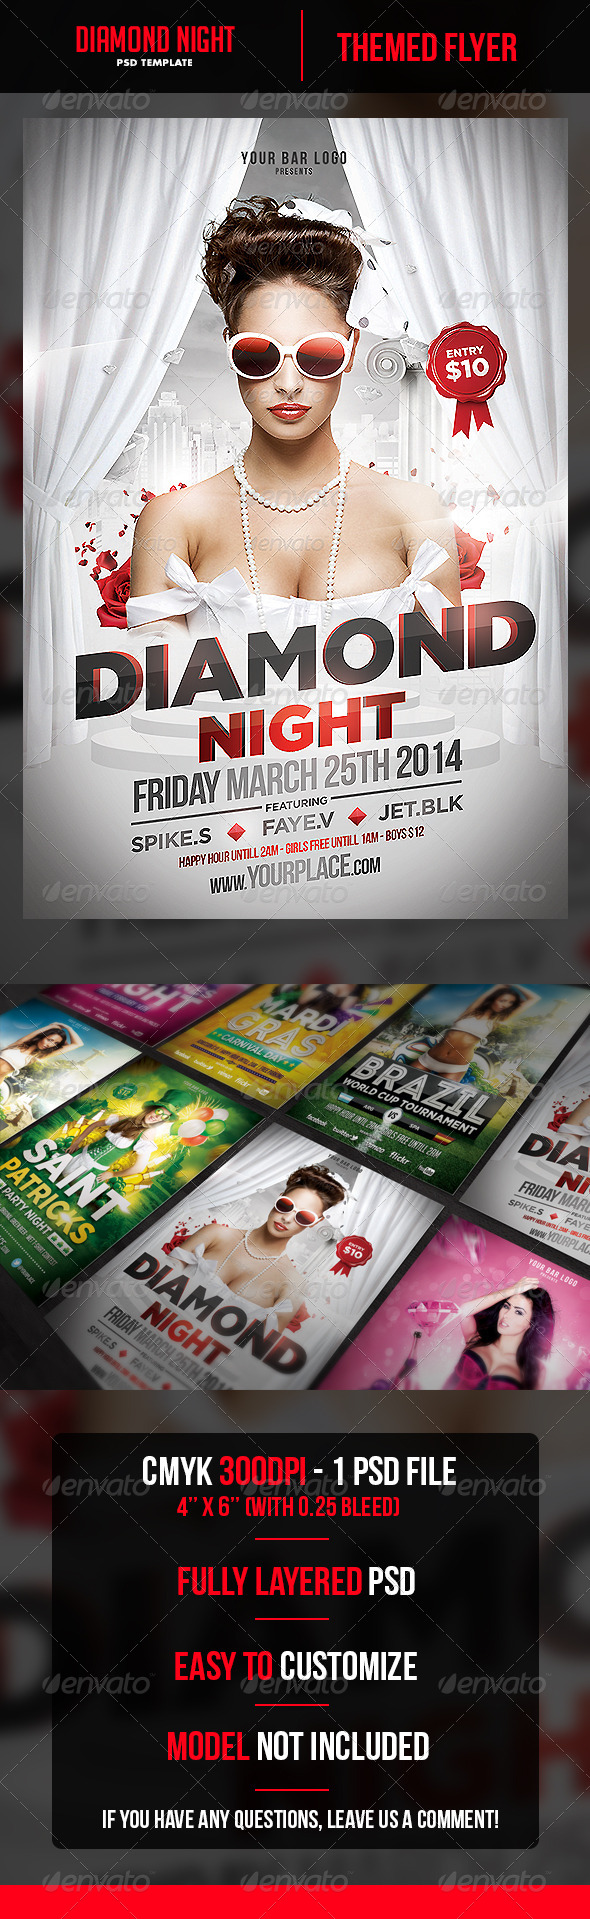 Diamond Night Flyer Template - Clubs & Parties Events